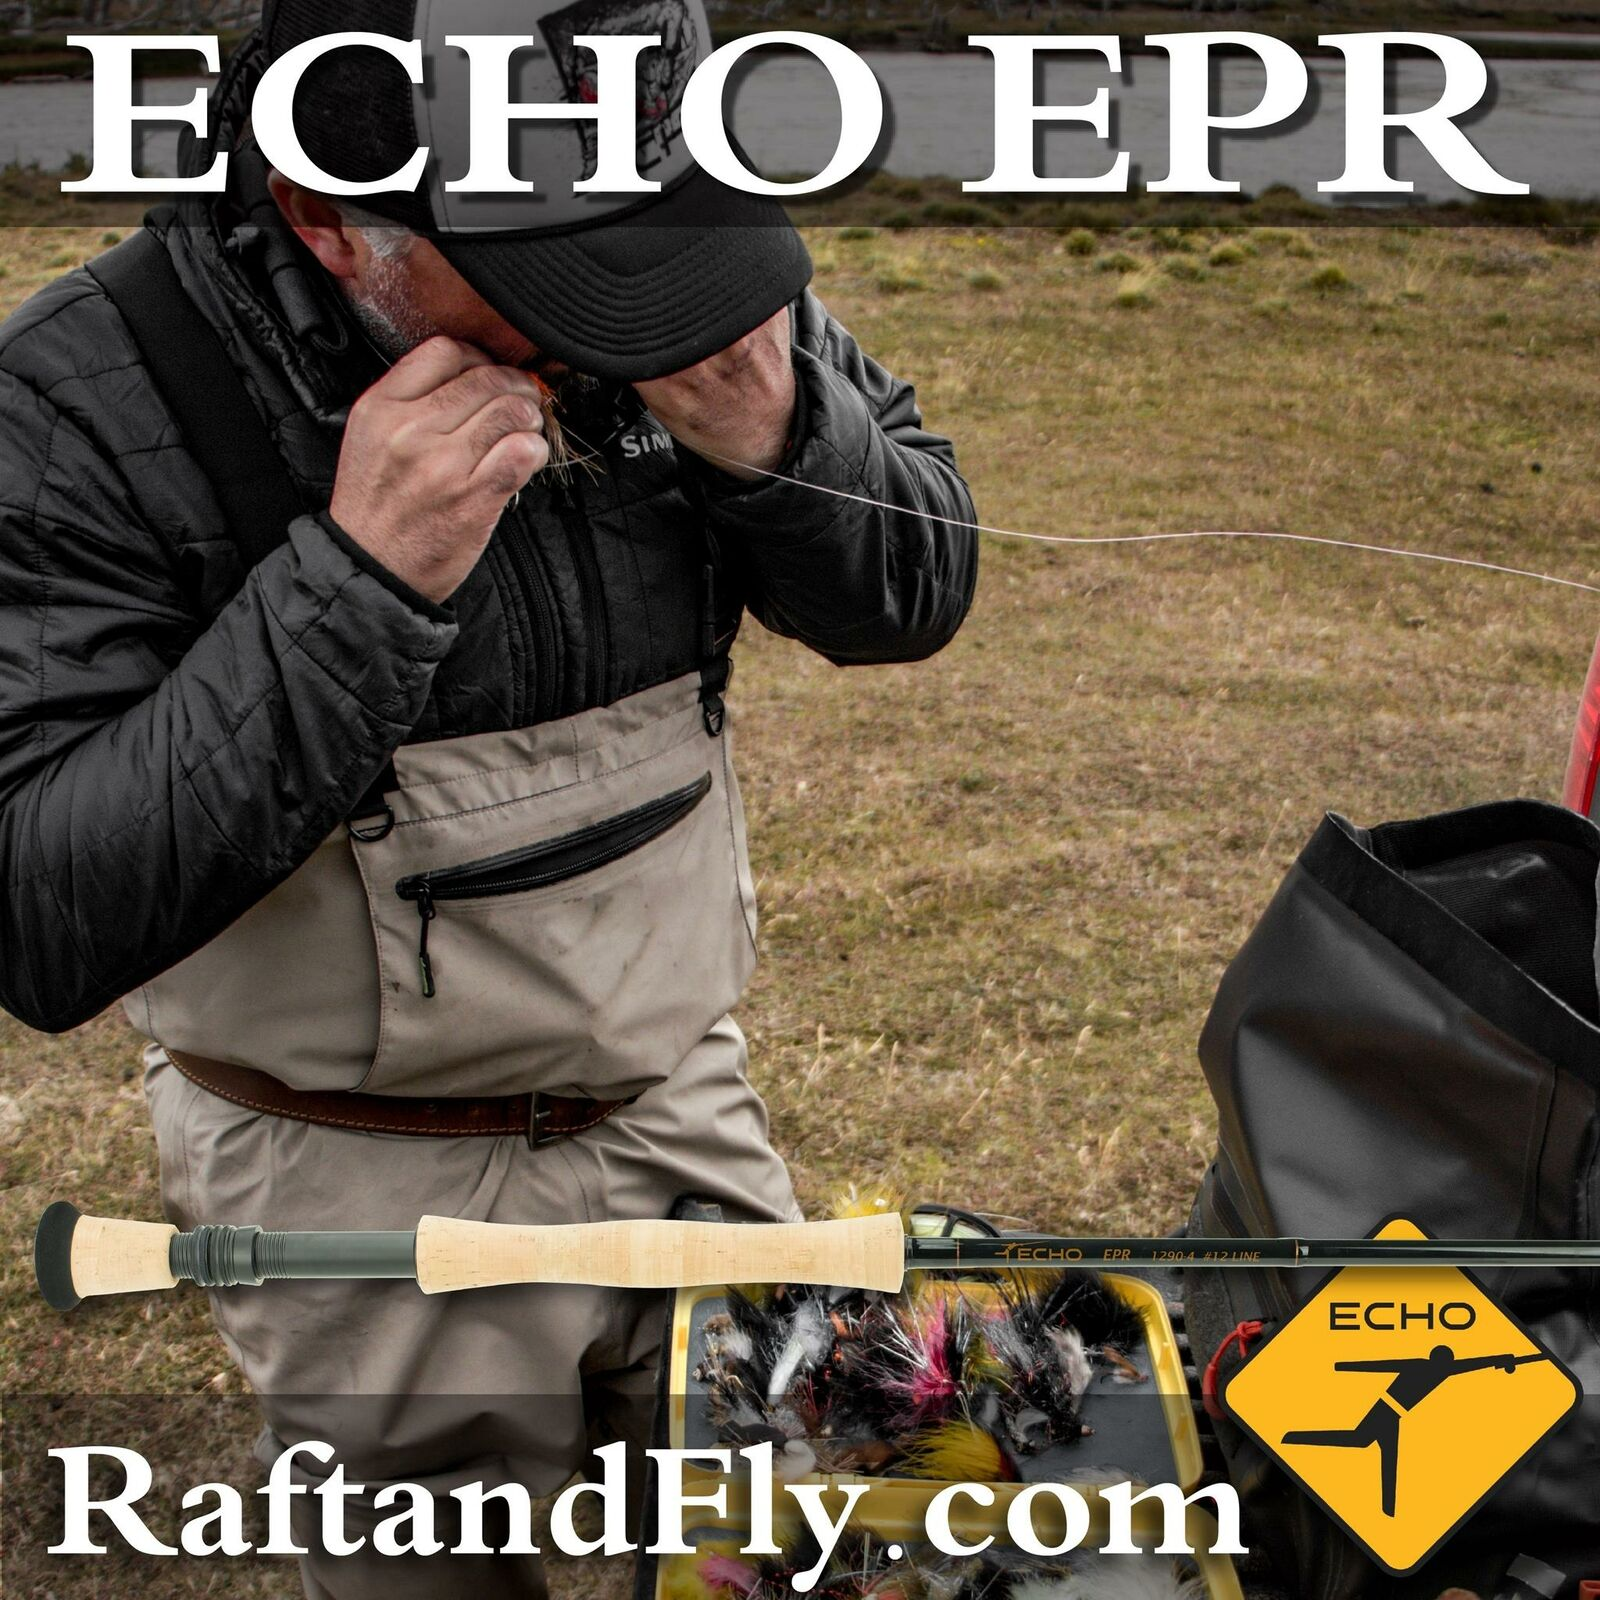 ECHO EPR 8wt Fly Rod designed by Pat Ehlers - Lifetime Warr. - FREE SHIPPING